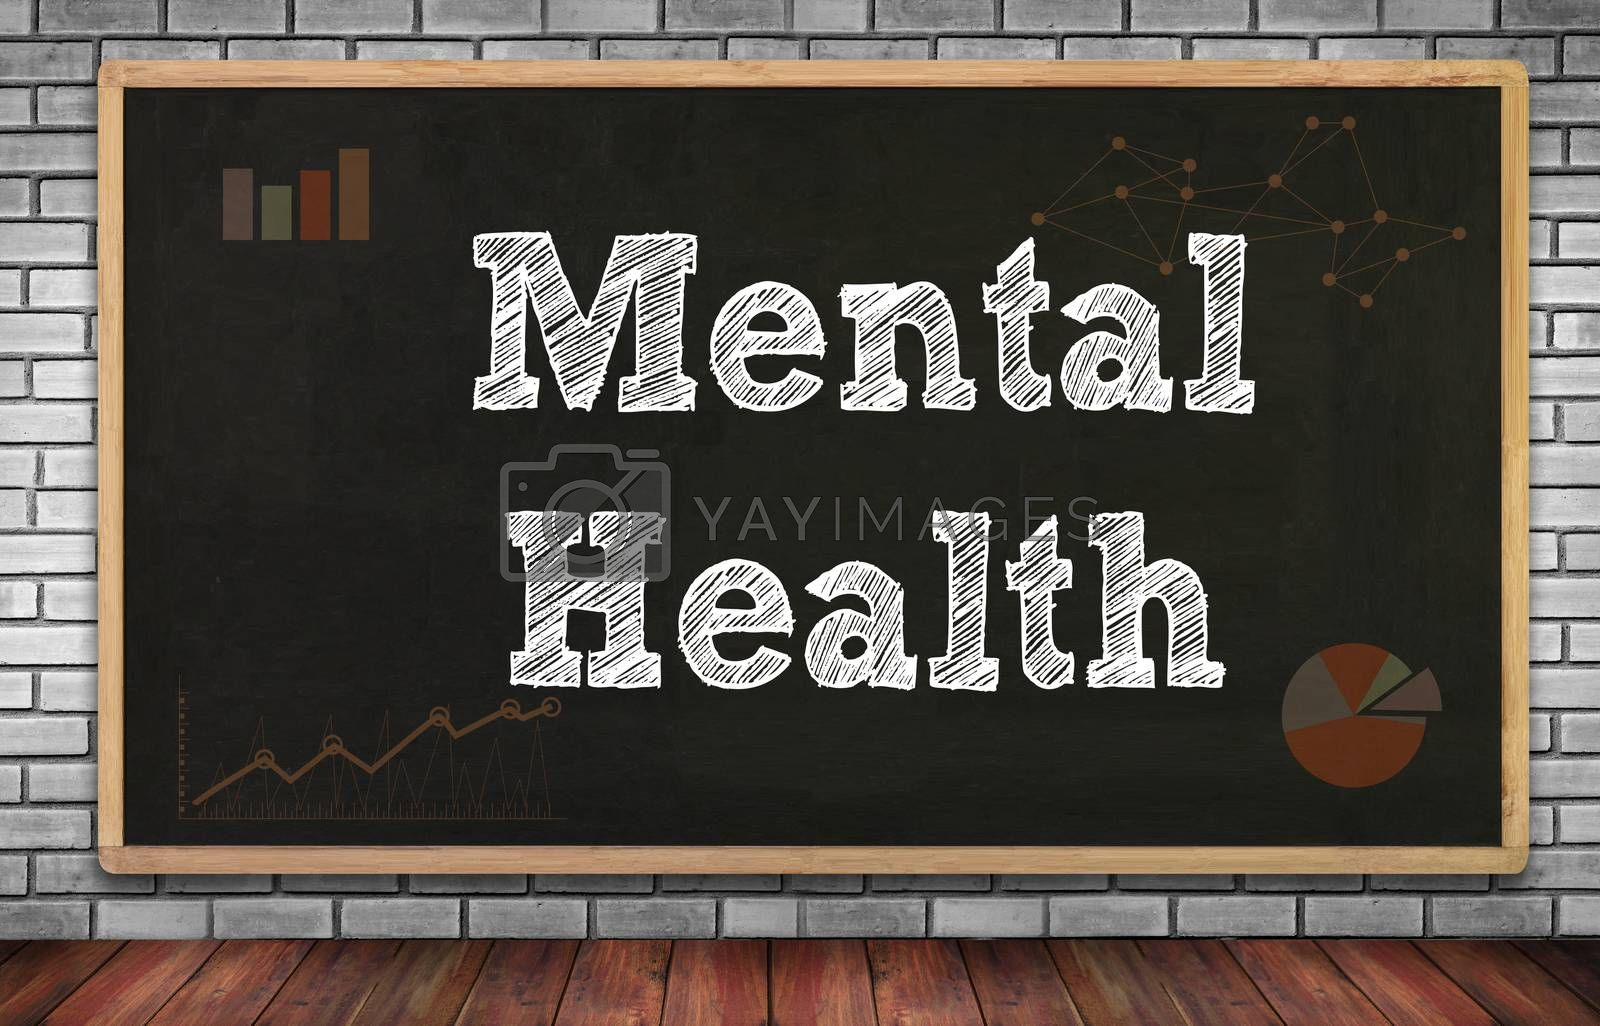 Mental Health on brick wall and chalkboard background